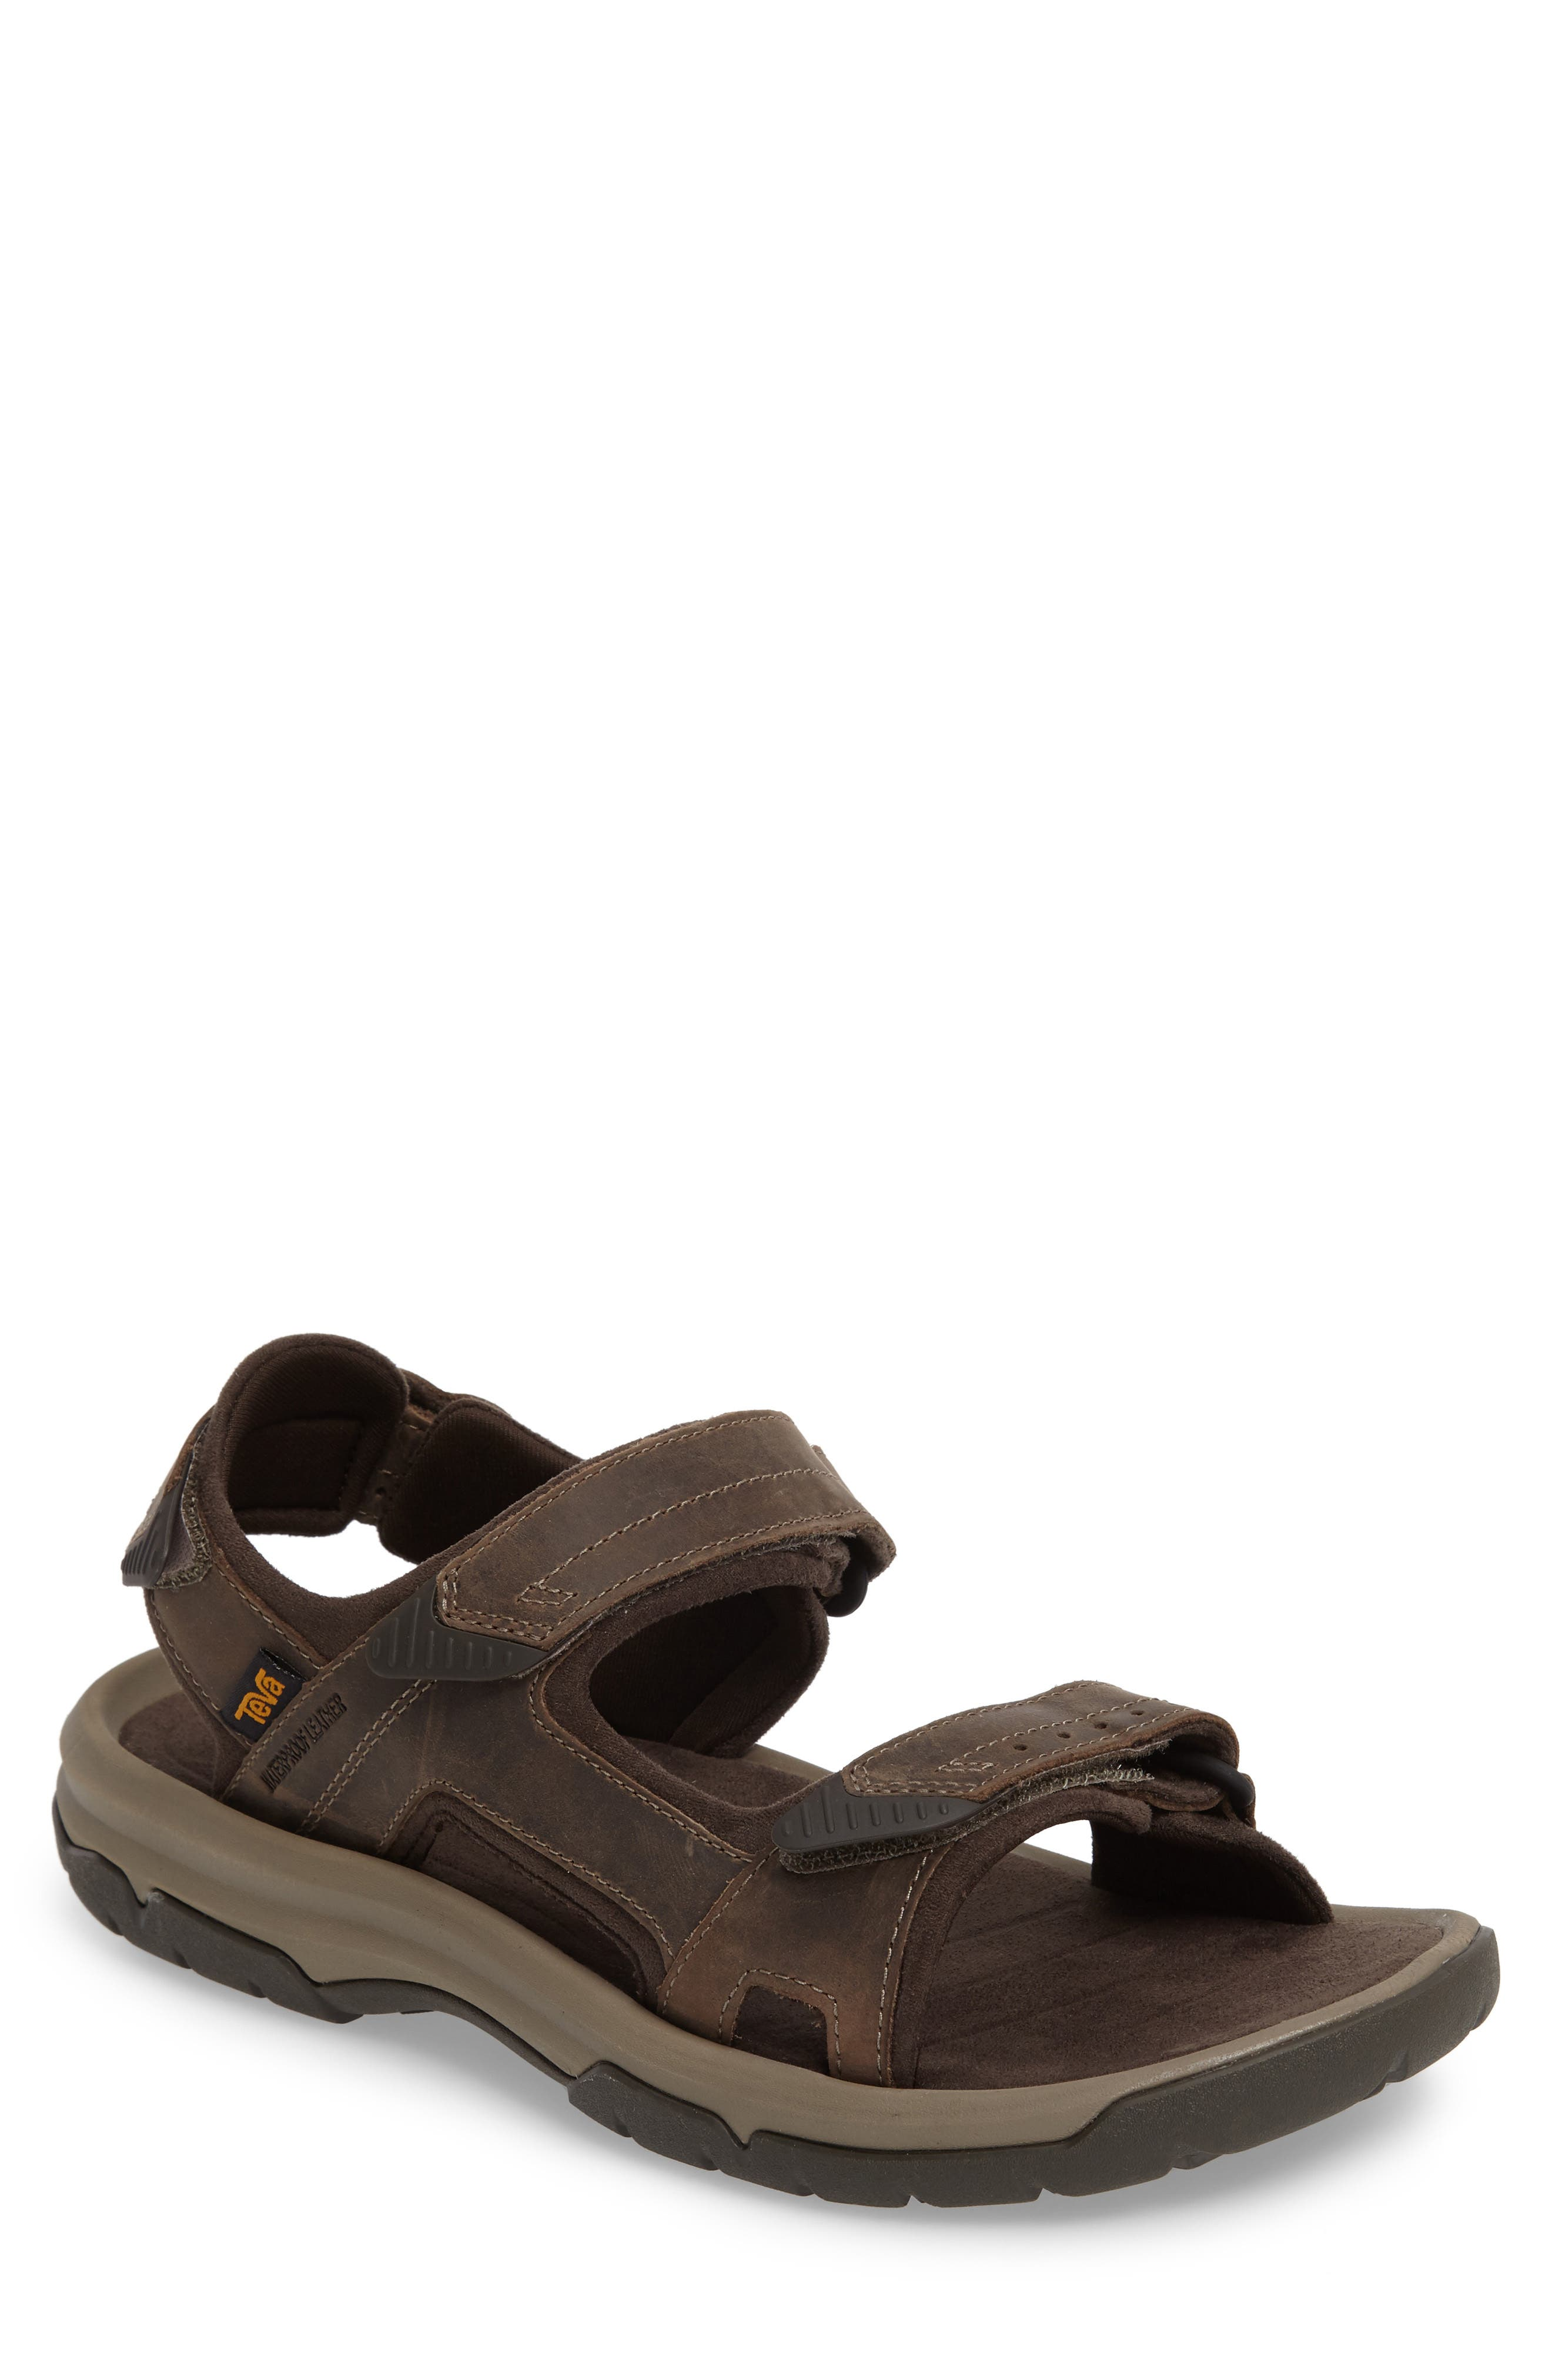 Langdon Sandal,                             Main thumbnail 1, color,                             Walnut